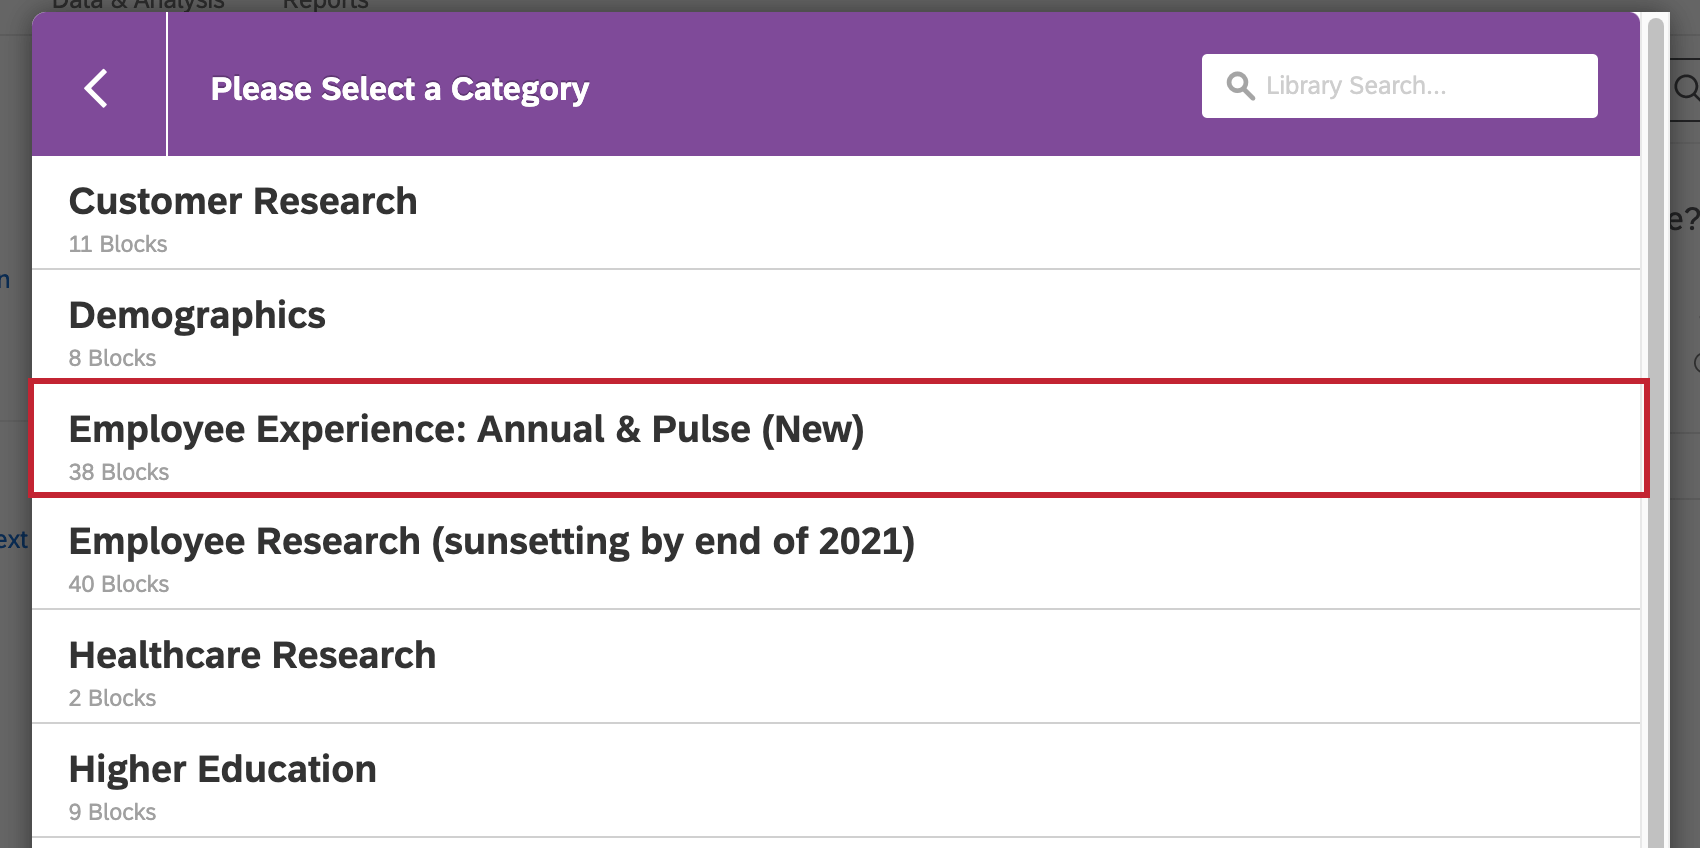 The library import screen. The employee experience: annual & pulse (new) option is selected